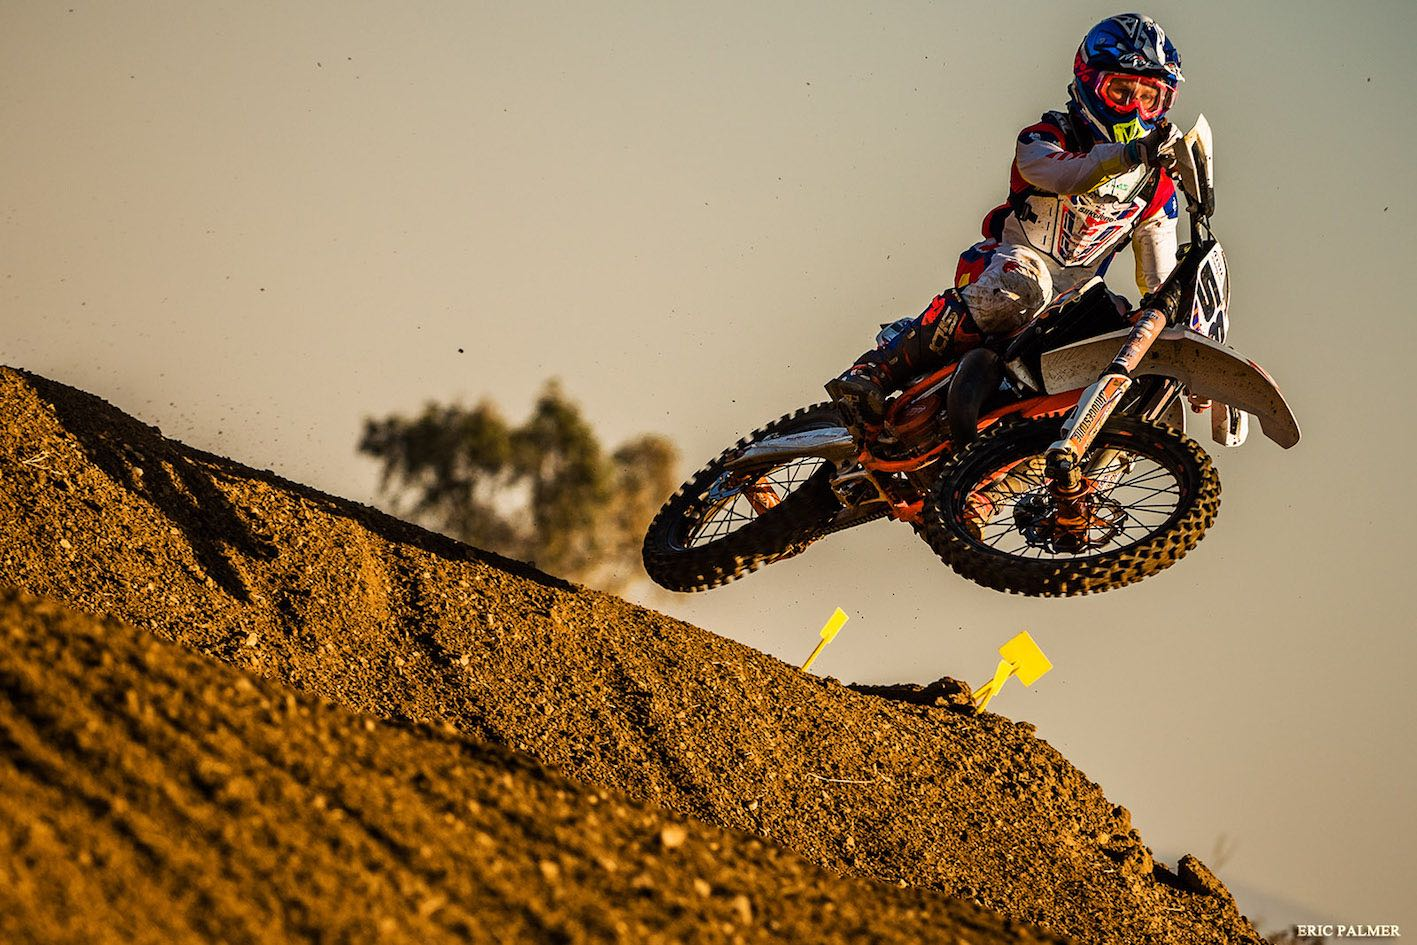 Cameron Durow taking the win in the 125cc High School class at the Motocross Nationals